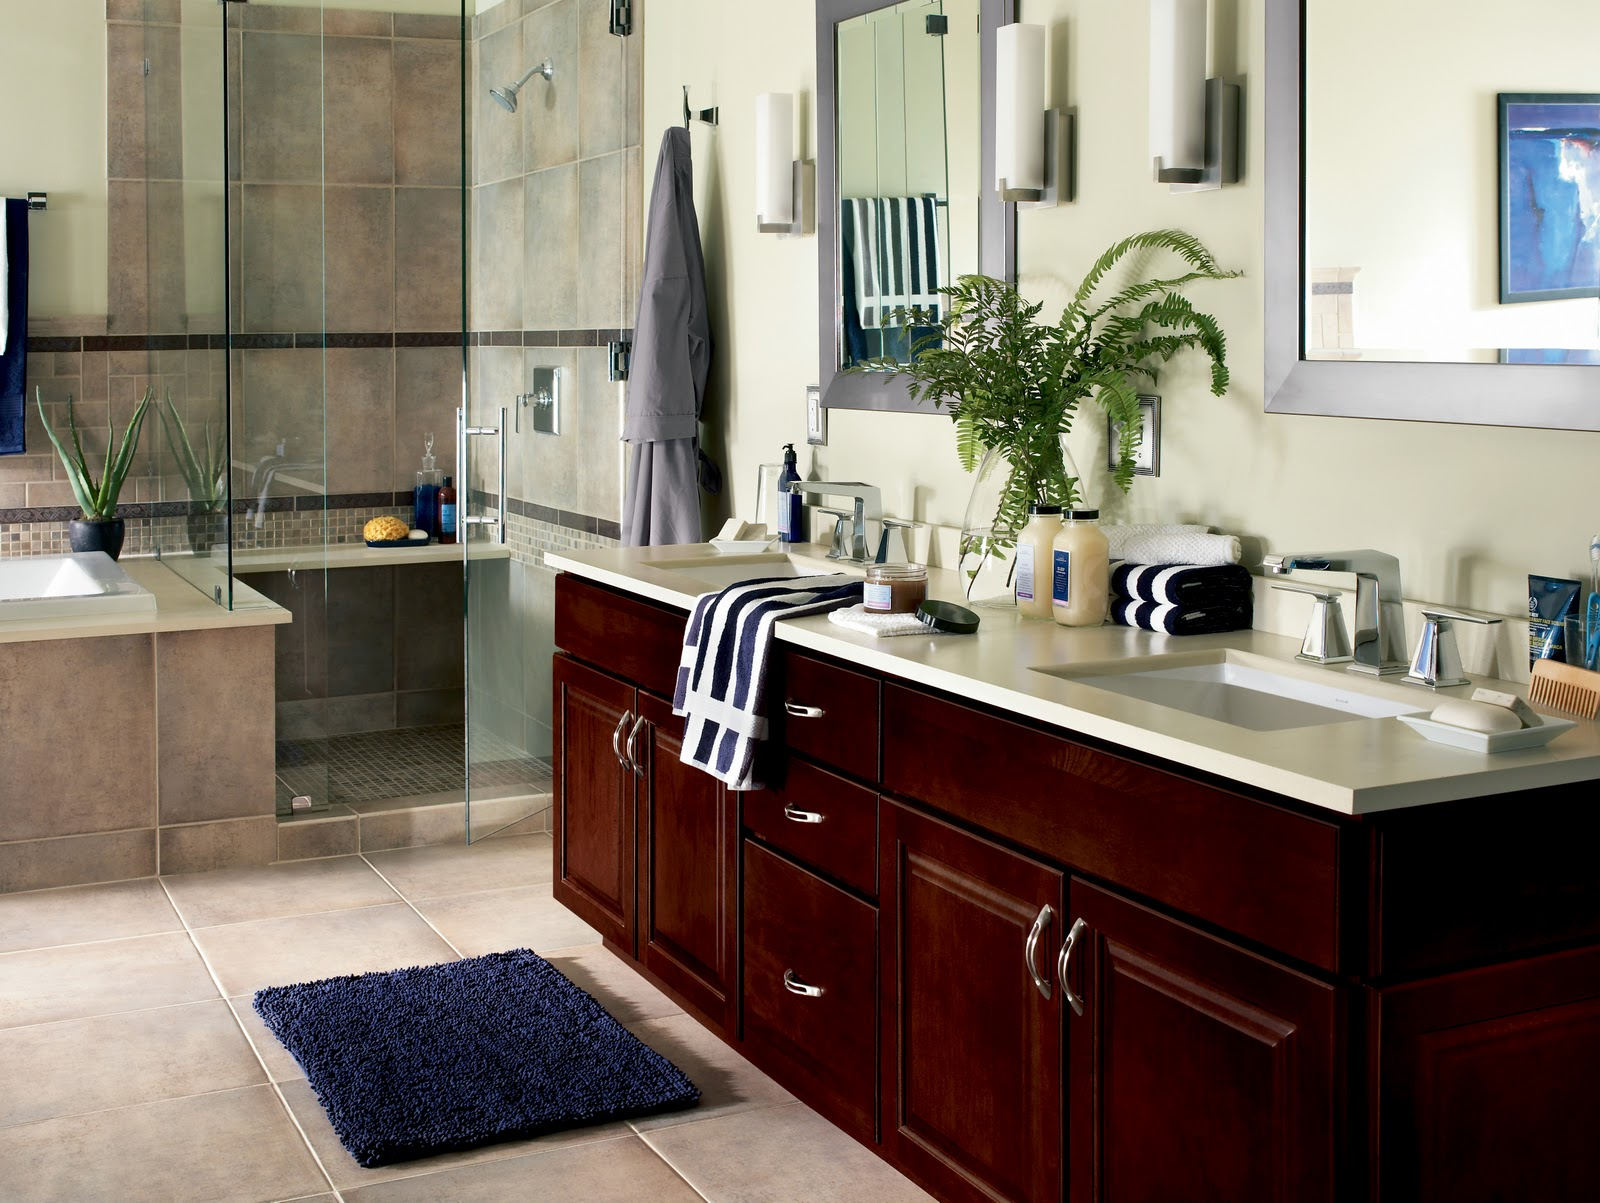 Bathroom Remodeling Bath Remodel Contractor - Average cost of bathroom remodel 2015